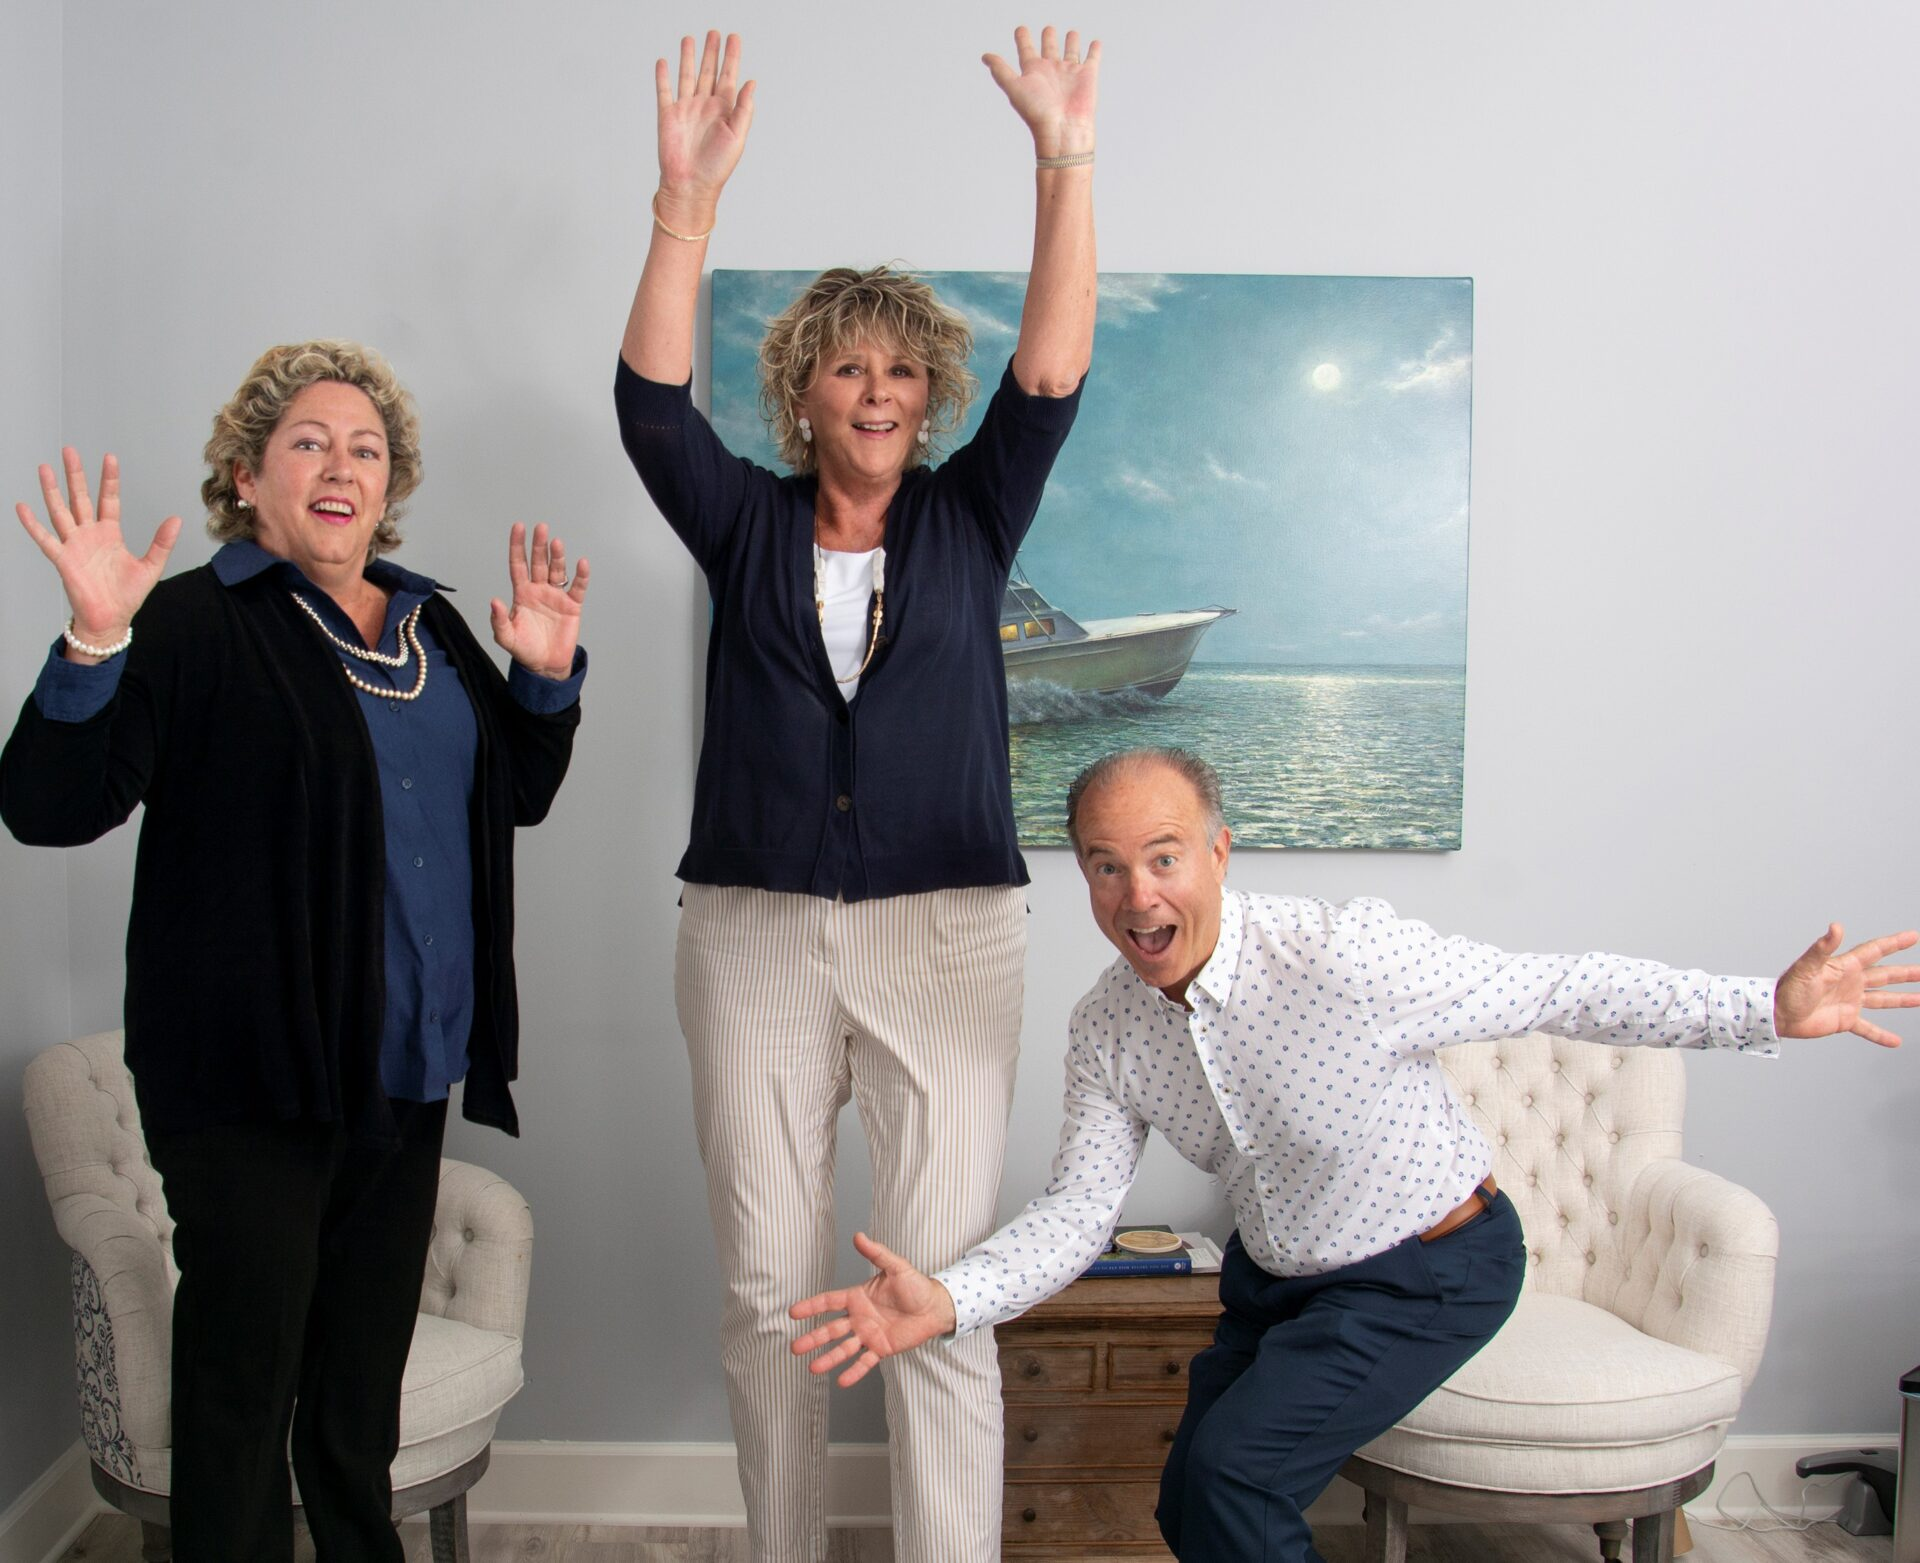 The Mortgage Lady Team